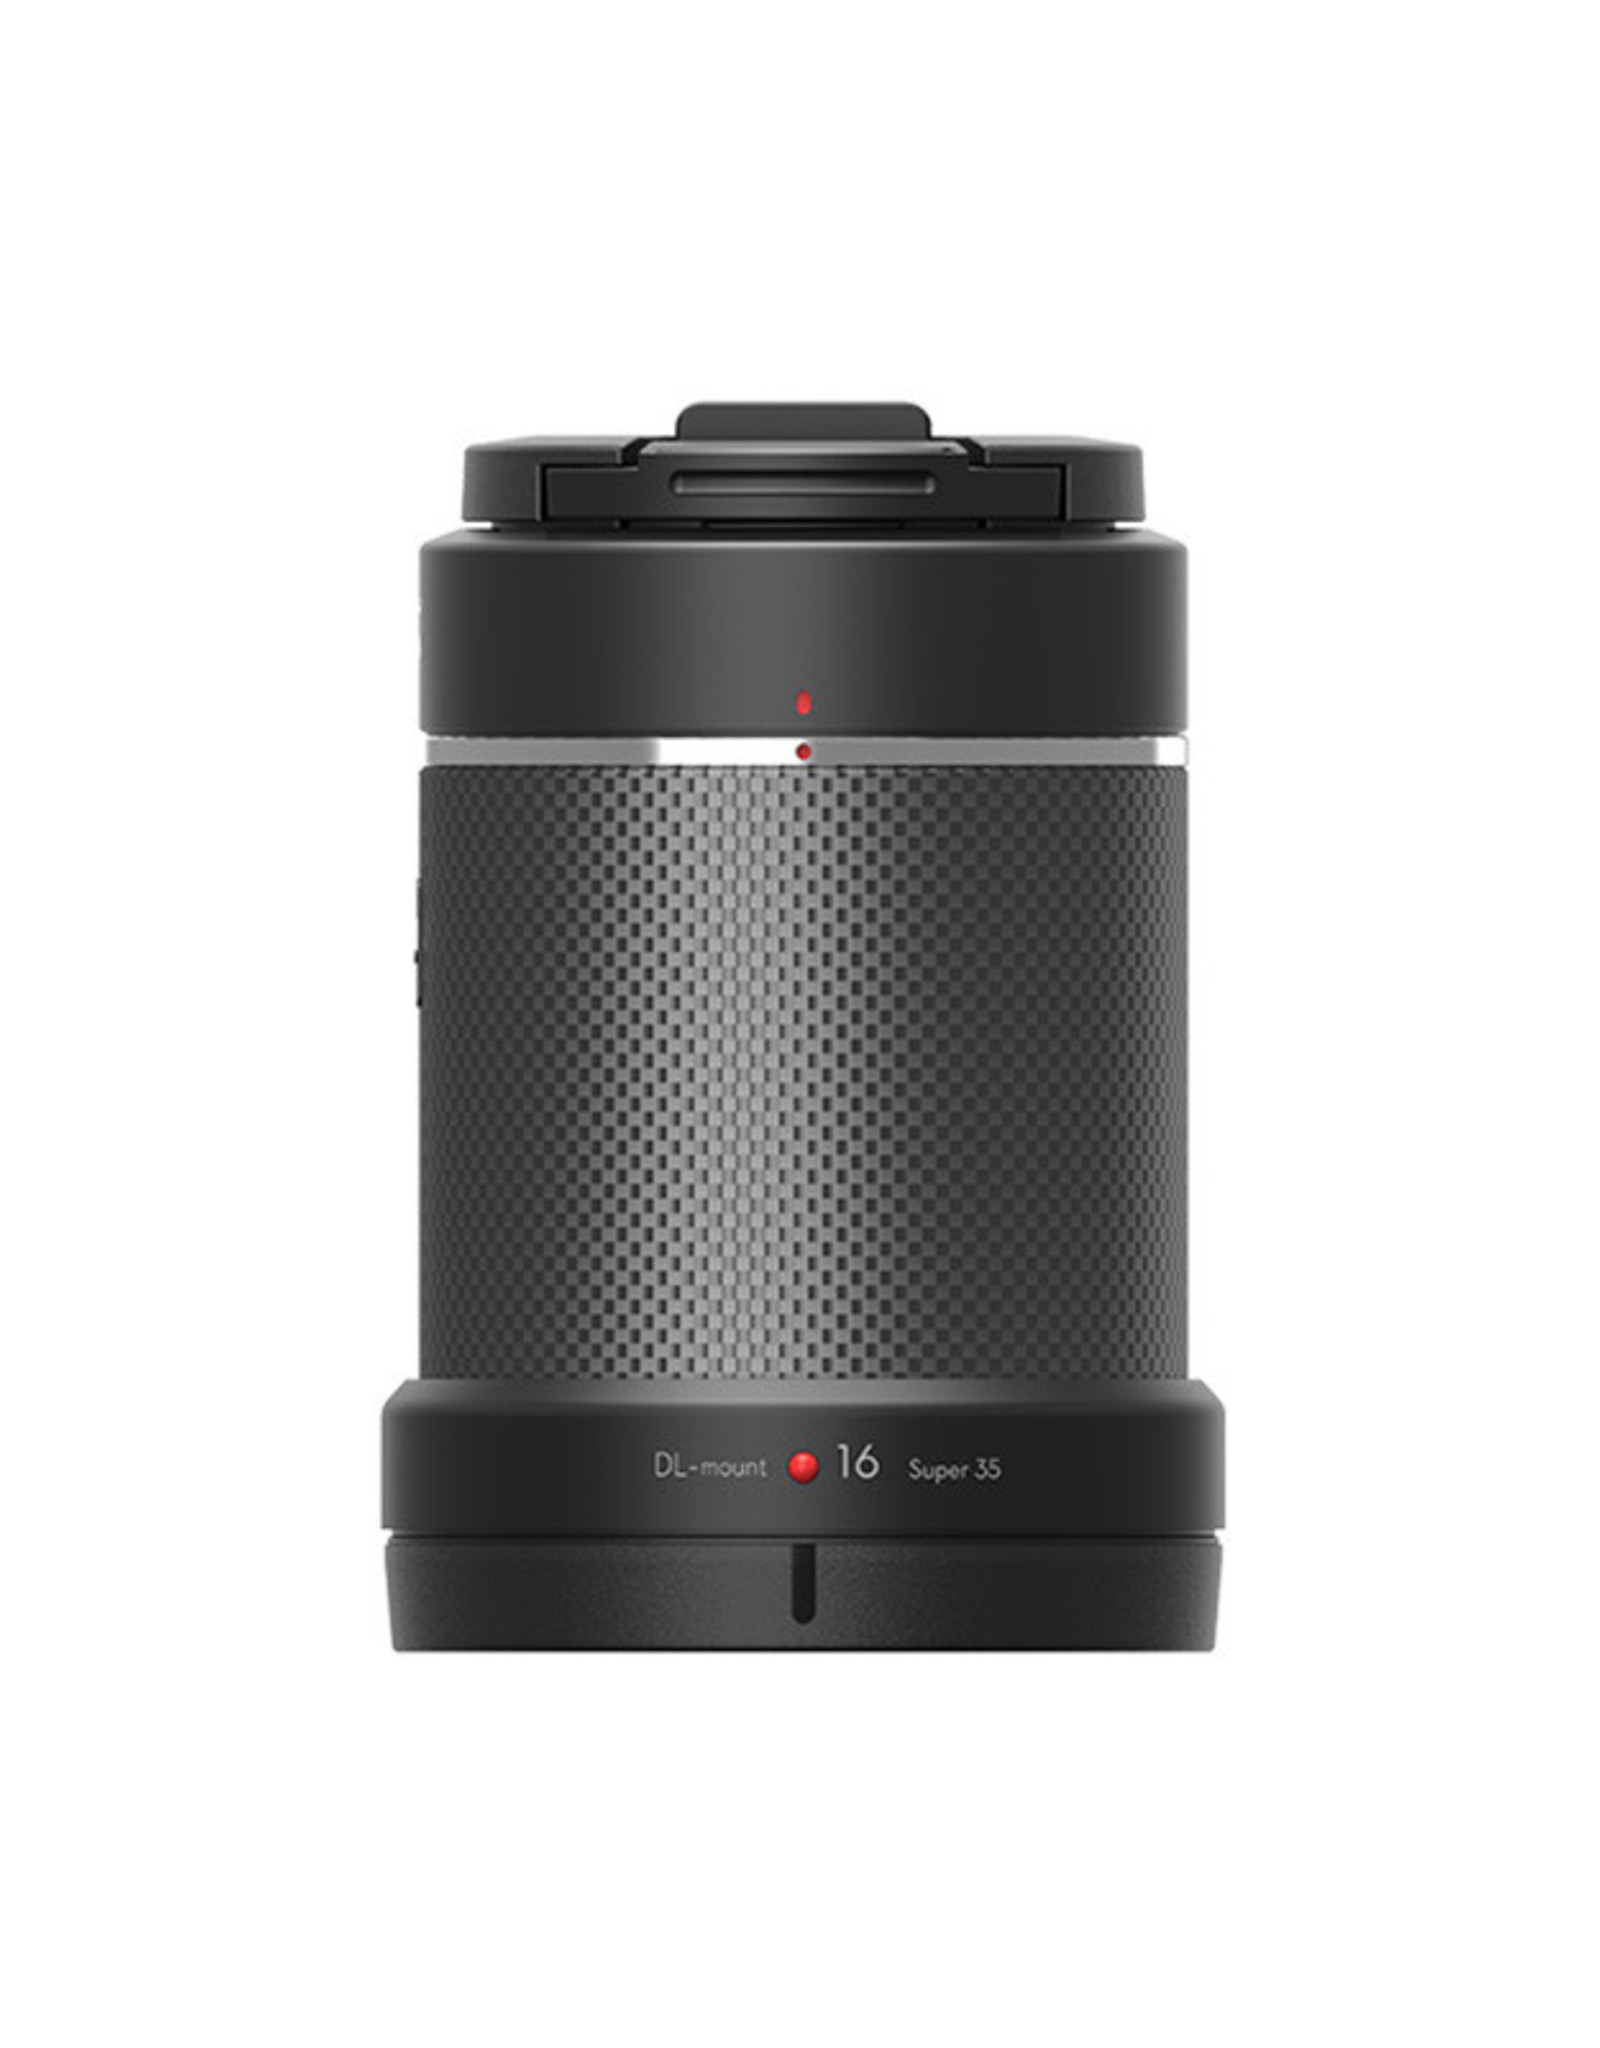 DJI Zenmuse X7 DJI DL-S 16mm F2.8 ND ASPH Lens